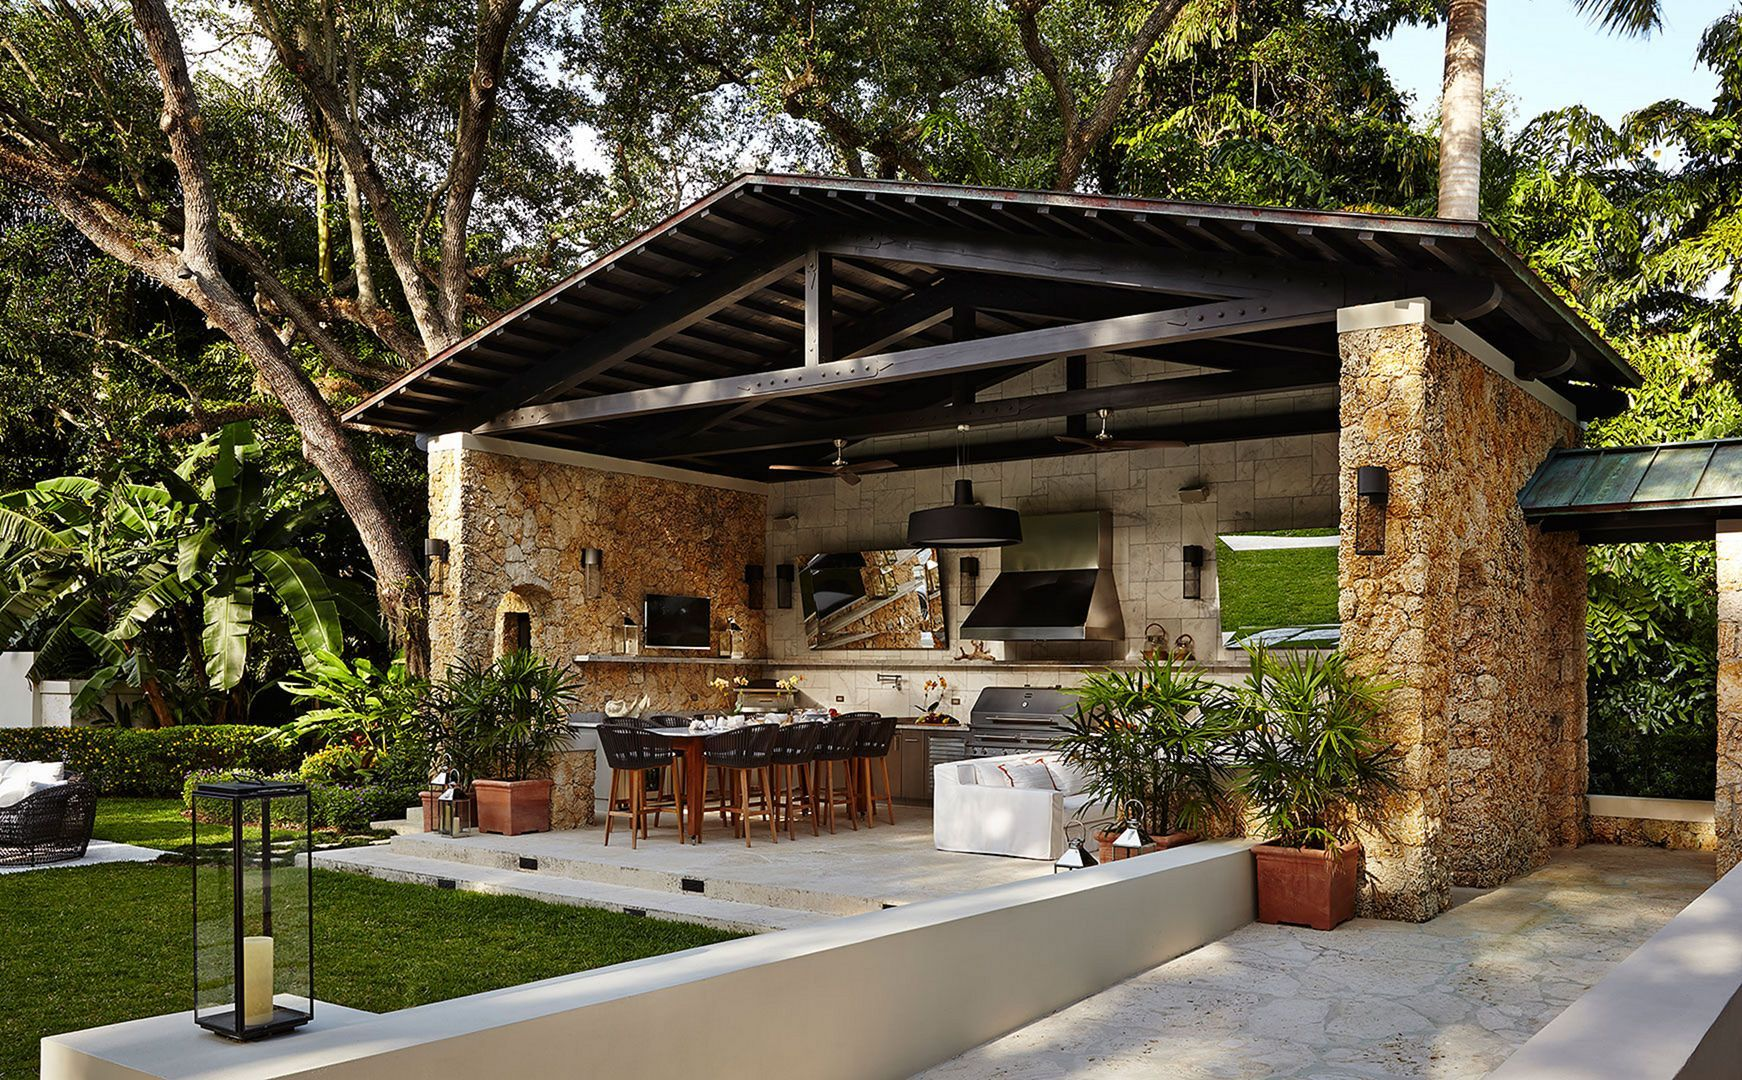 25 extraordinary outdoor kitchen design for best backyard ideas covered outdoor kitchens on outdoor kitchen and living space id=49593